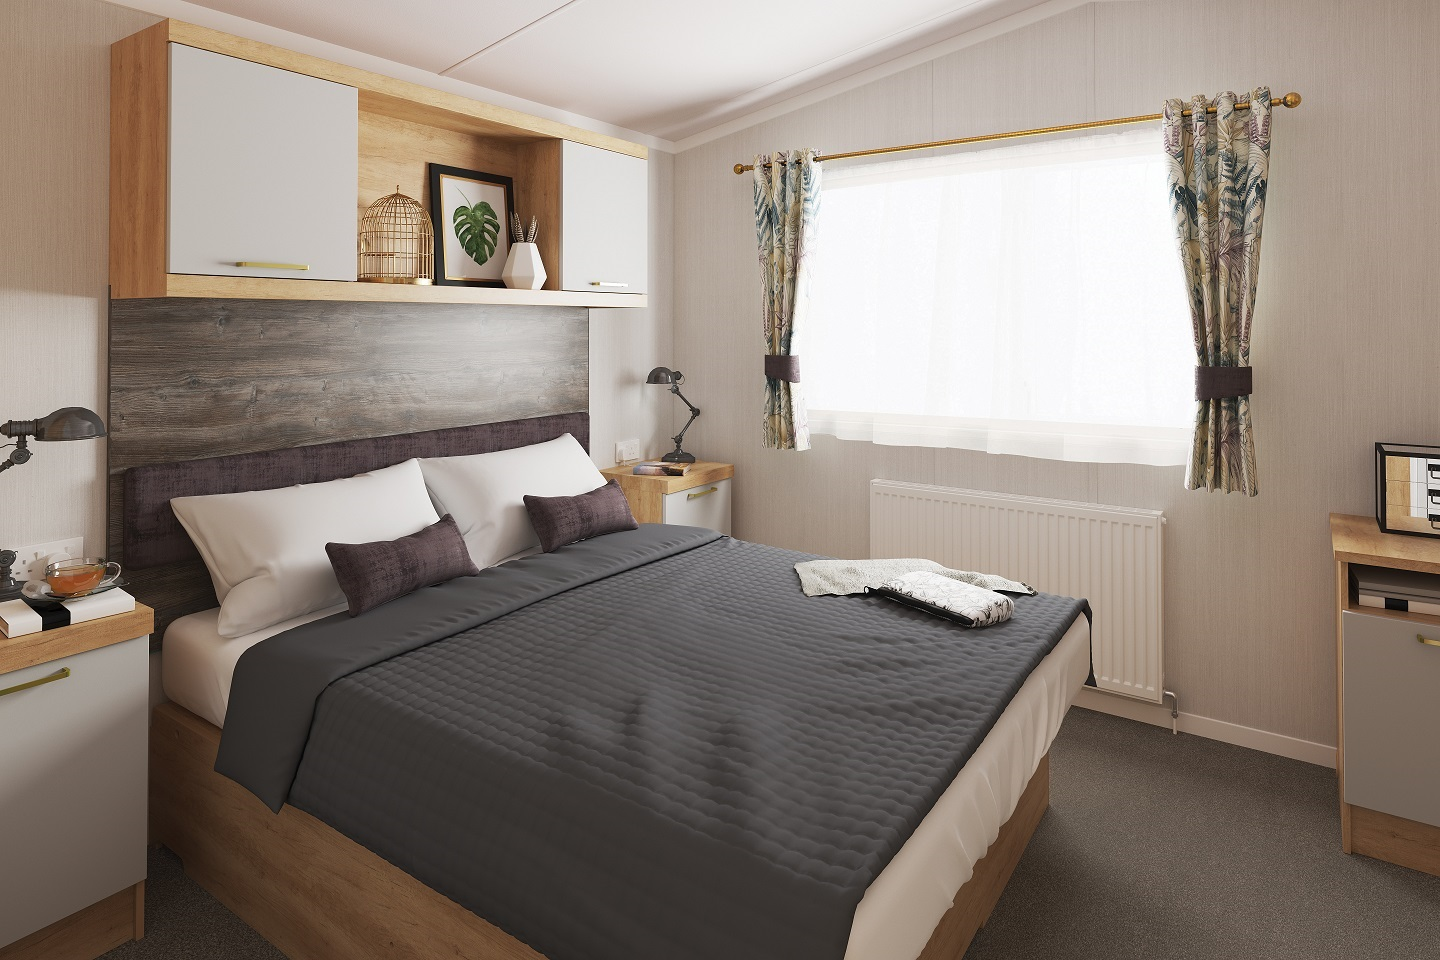 Swift Bordeaux: New Static Caravans and Holiday Homes for Sale, Langley Moor, Durham Large Image 3